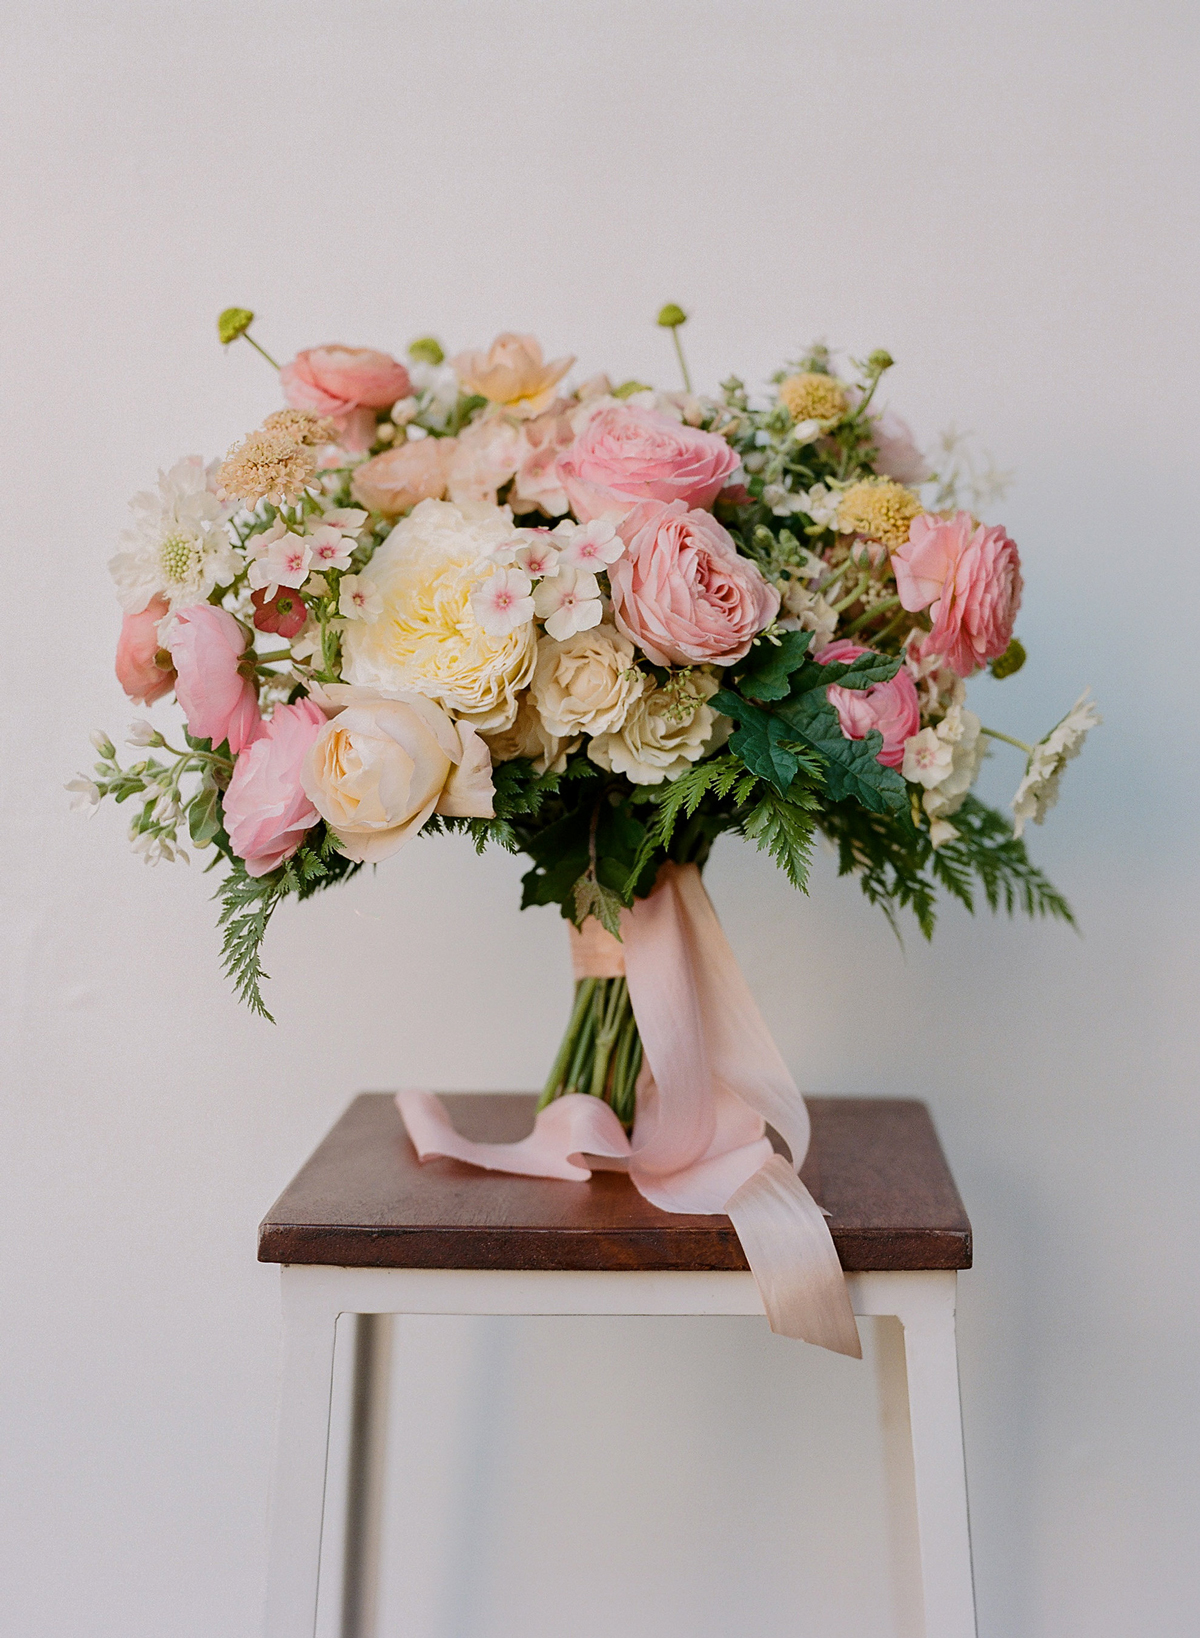 bouquet of white and pink roses with geranium and fern foliage